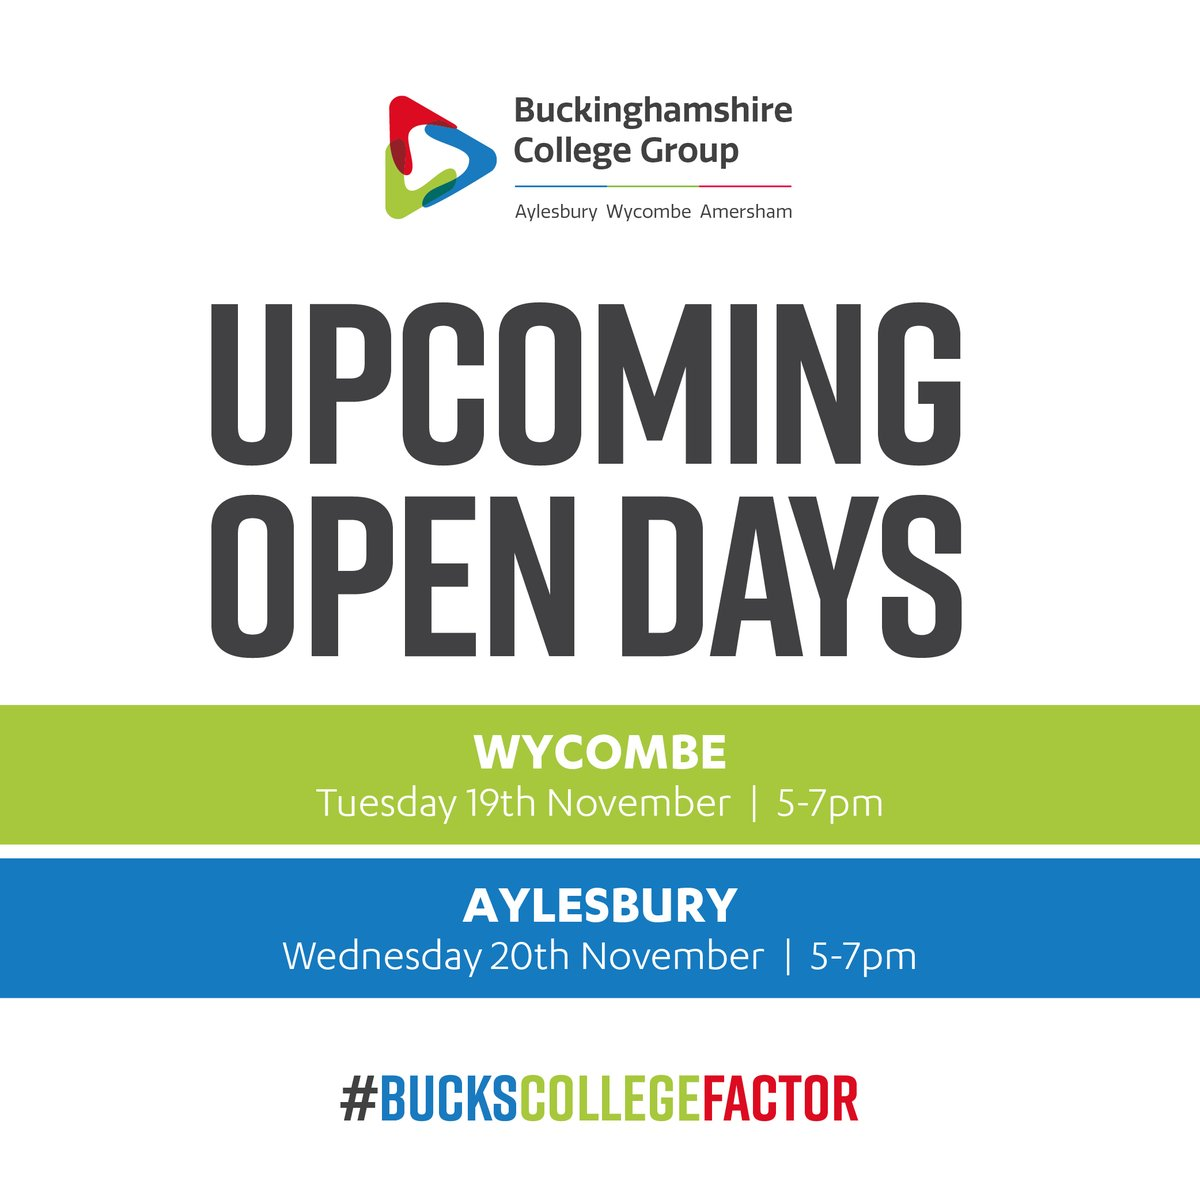 To get the #BucksCollegeFactor working for you, register for one of our upcoming Open Days at https://www.buckscollegegroup.ac.uk/enrol/open-days.     #BucksCollegeGroup #Bucks #Buckinghamshire #College #HigherEducation #College #Aylesbury #Amersham #Wycombe #Apprenticeship #OpenDay